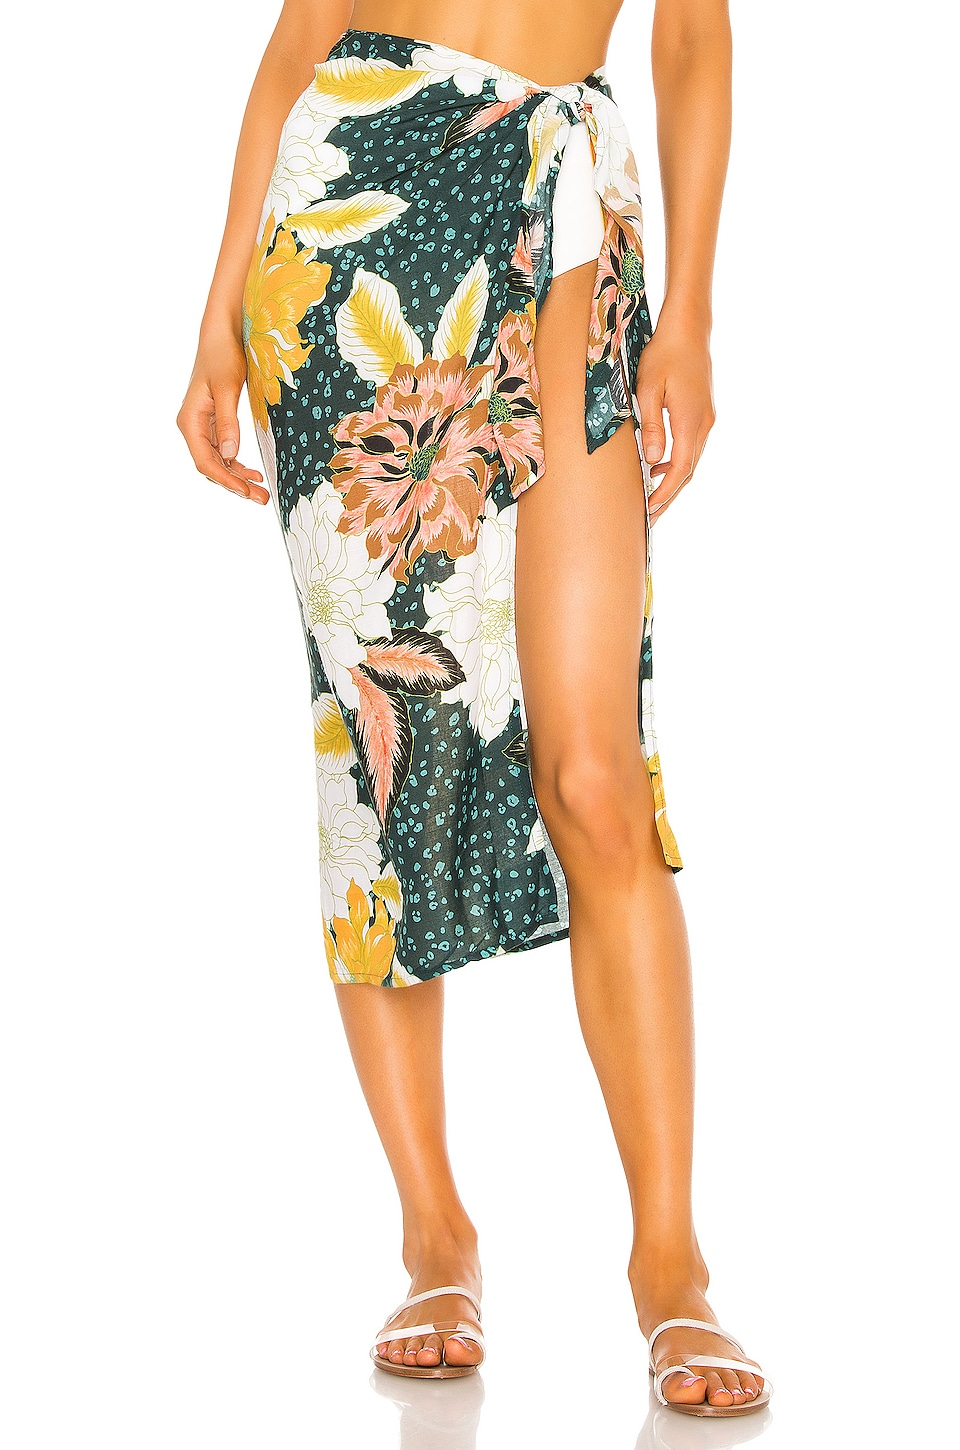 lovewave The Bonbon Sarong in Jungle Tropics